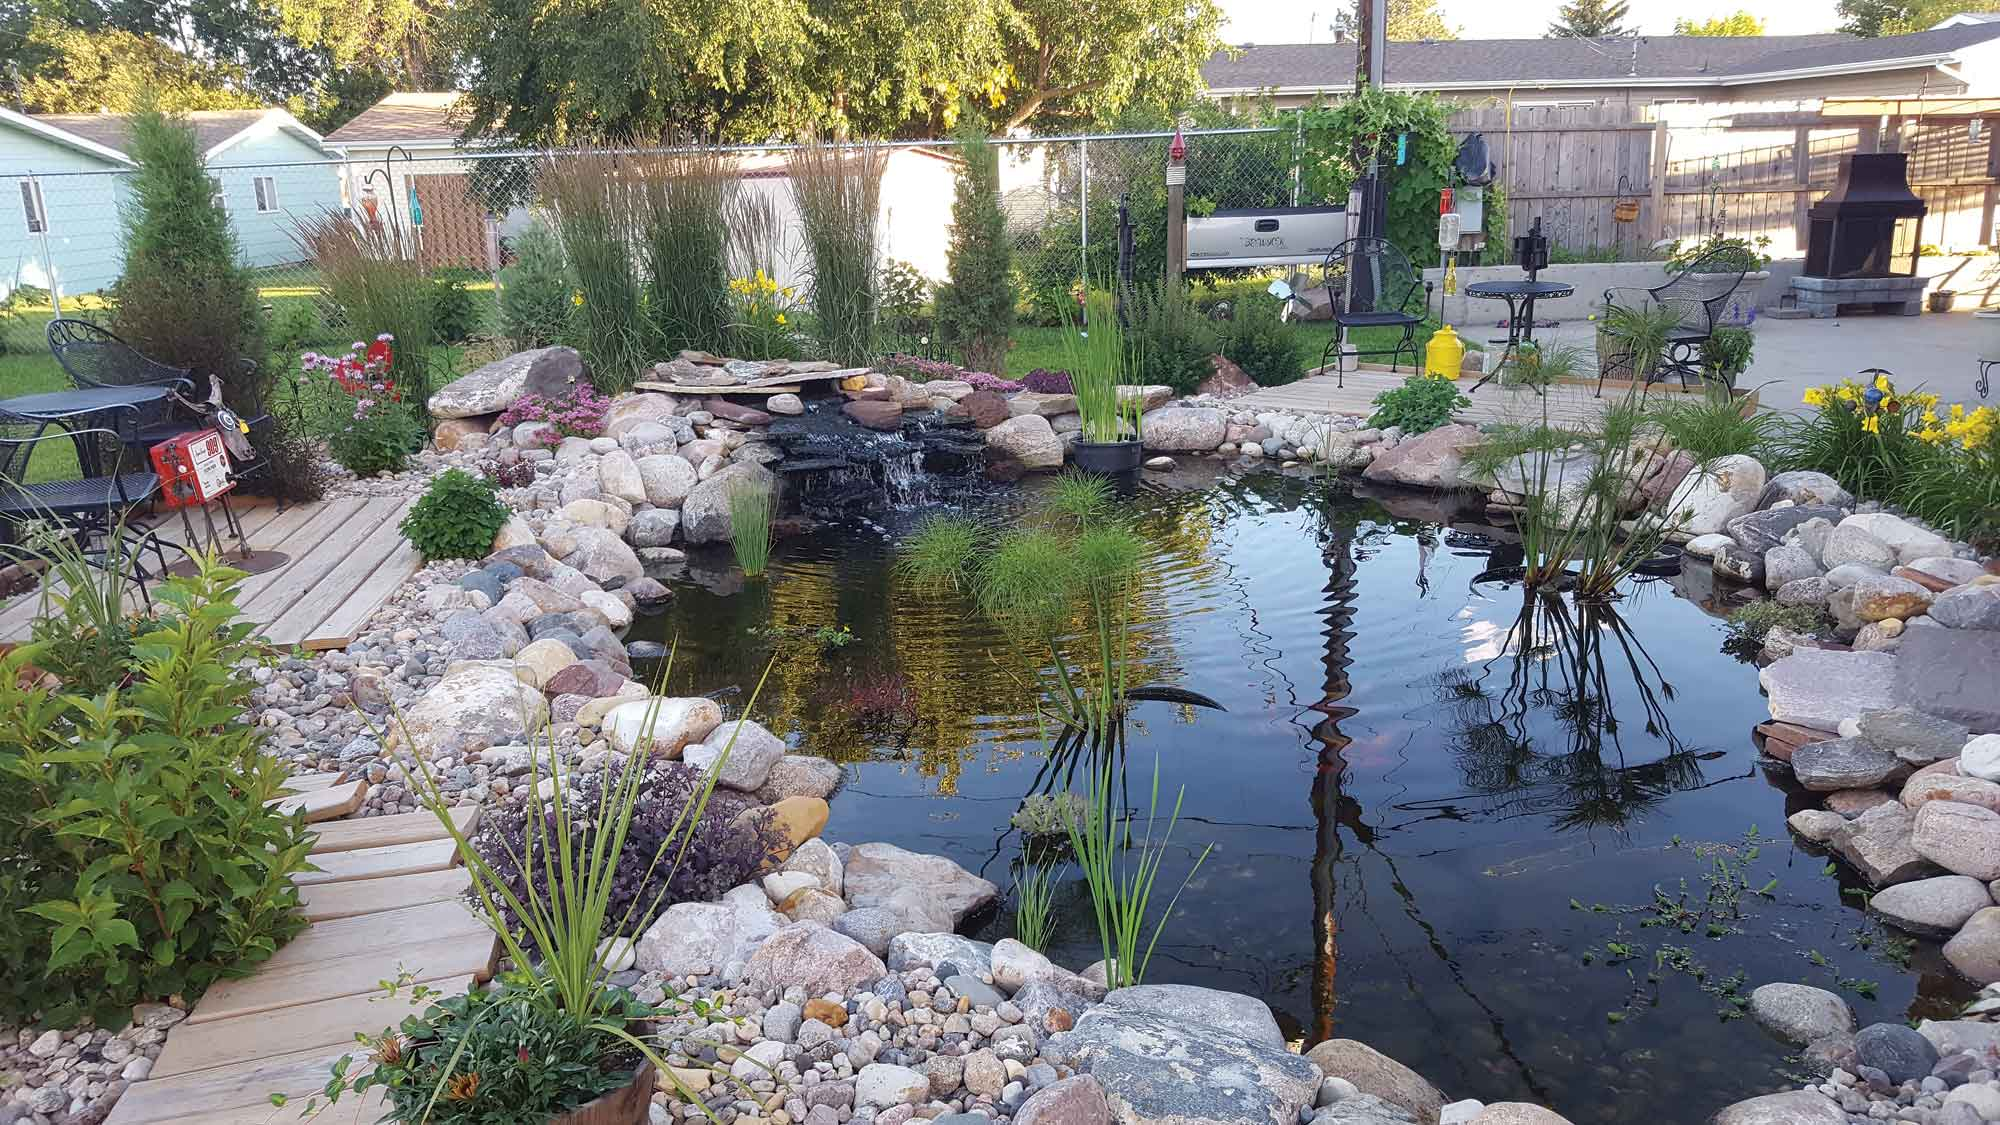 Share Your Garden Or Yard Projects News Sports Jobs